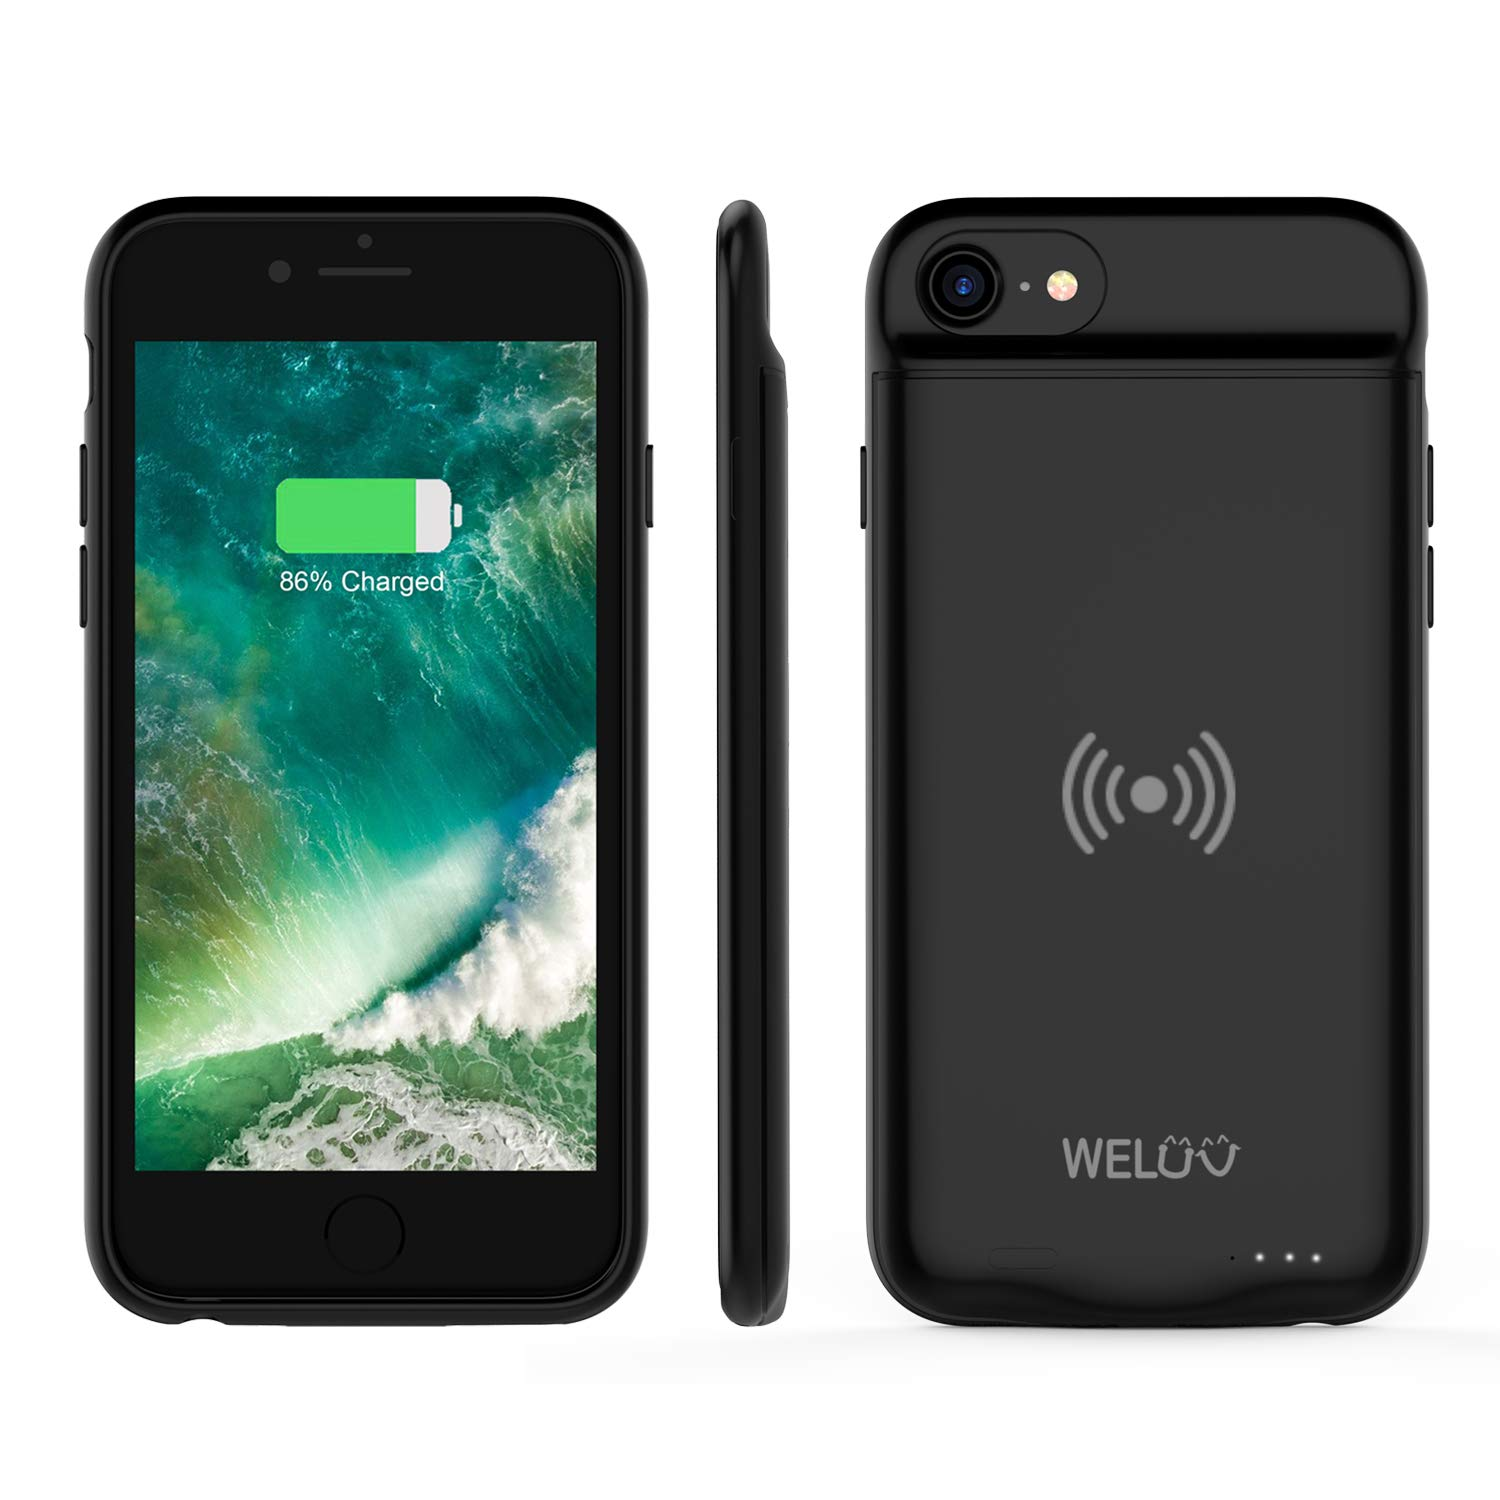 WELUV Wireless Battery Case for iPhone 8 Plus 7 Plus 6s Plus 6 Plus Portable 4000mAh Rechargeable Protective Qi Charging Case Extended Battery Pack Charger Case Black by WELUV